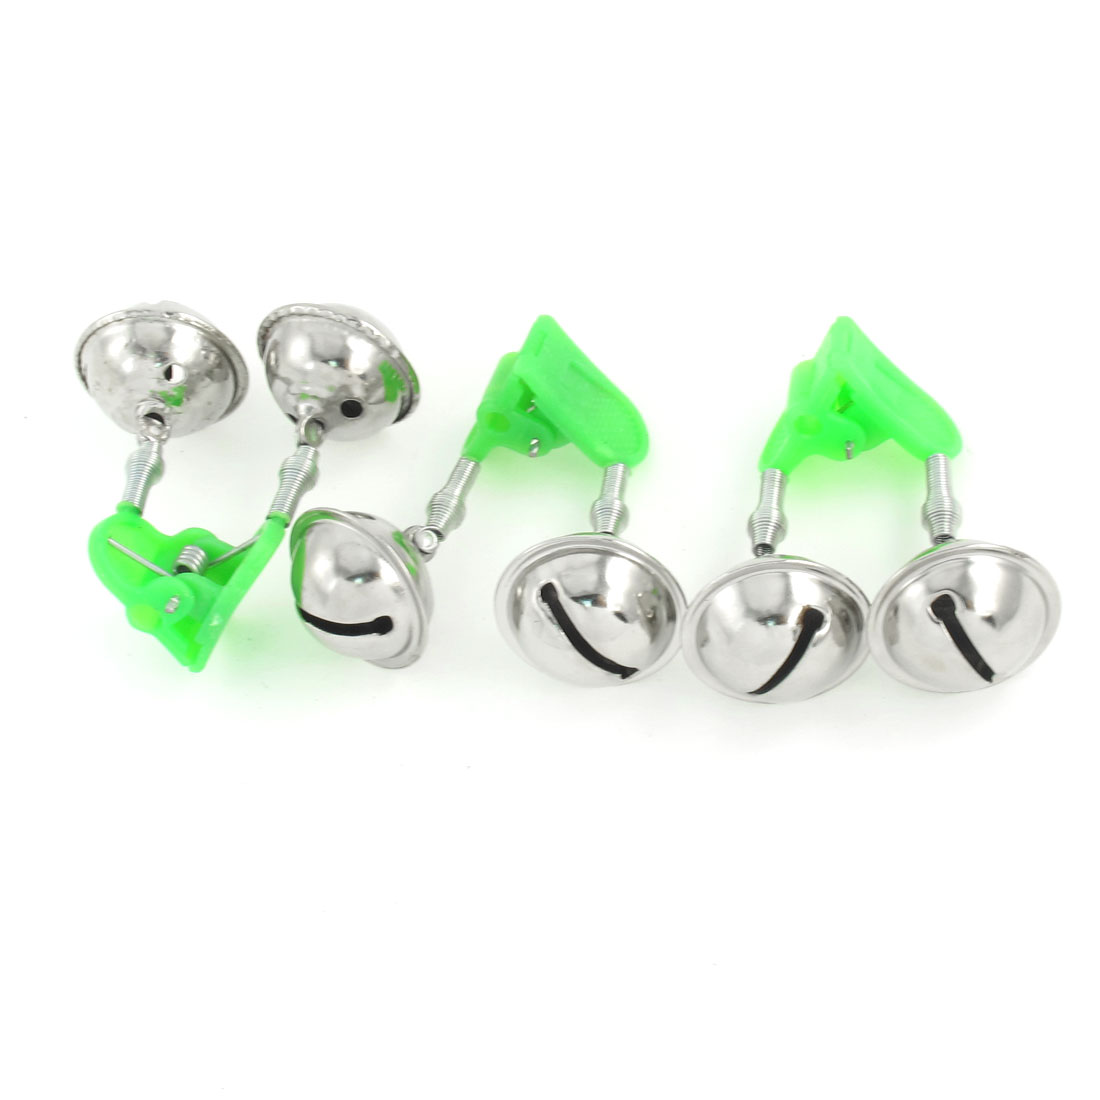 3 Pcs Green Plastic Clip Double Rings Fishing Alarm Bells